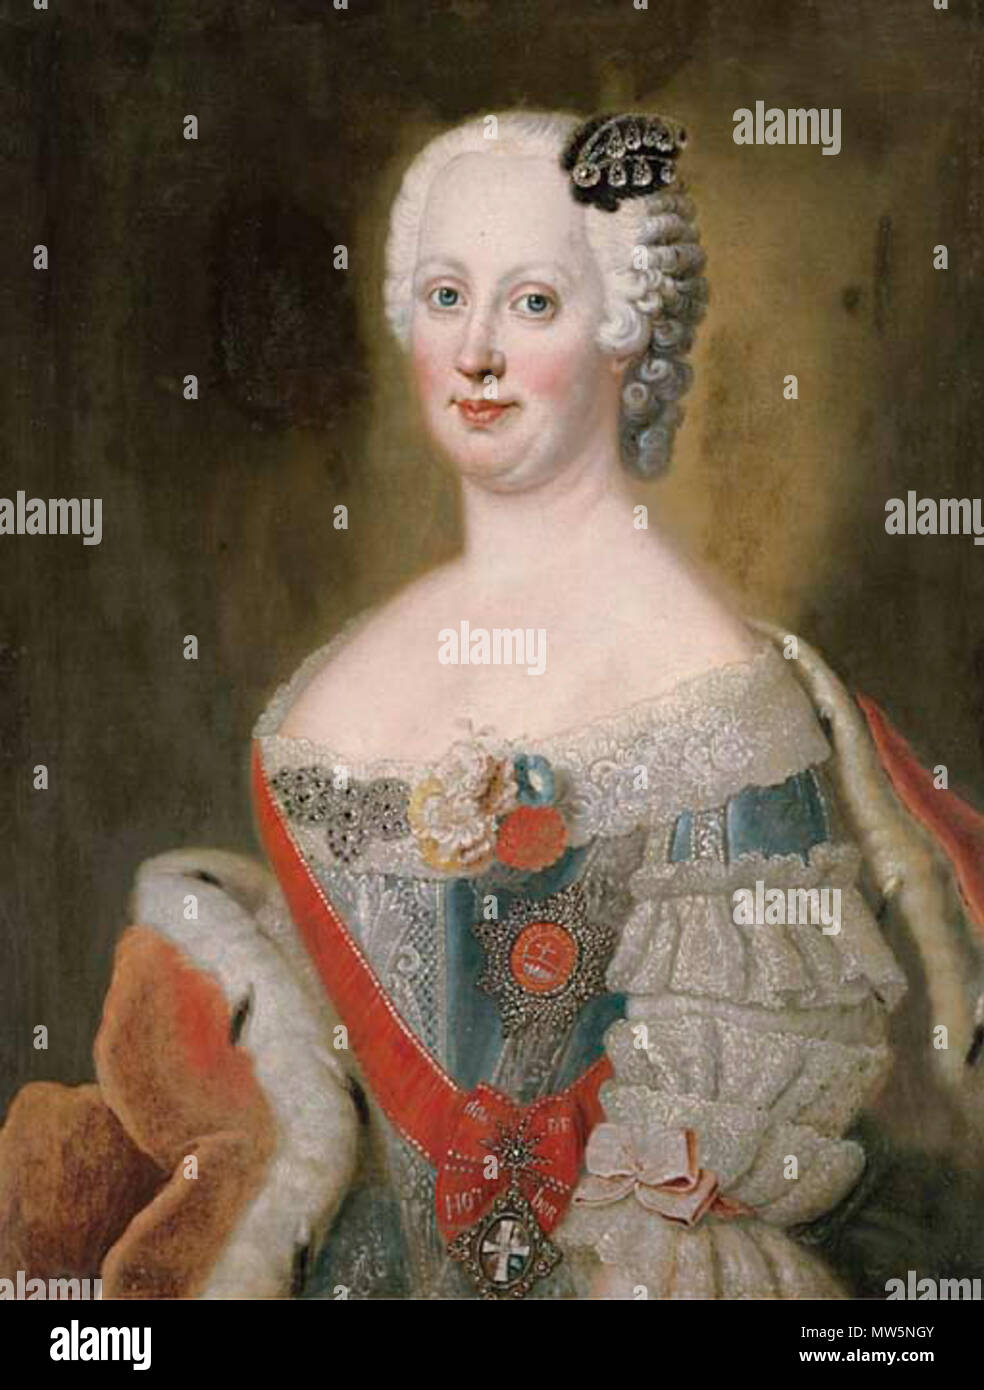 . Portrait of noblewoman, traditionally identified as Catherine the Great (l762-1796), Empress of Russia, bust-length, in a blue silk dress with lace trim and an ermine-lined cloak oil on canvas 32 x 24½ in. (81.3 x 61.6 cm.) PROPERTY FROM THE ESTATE OF BARONESS AIDA NORA VON DEM BUSSCHE-STREITHORST We are grateful to Sir John Guinness for pointing out that the sitter is in fact Johanna Elizabeth, Princess of Holstein-Gottorp (1712-1760), wife of Prince Christian August, Prince of Anhalt-Zerbst (1690-1727) and mother of the Tsarina Catherine the Great, wearing the Order of Saint Catherine. The Stock Photo